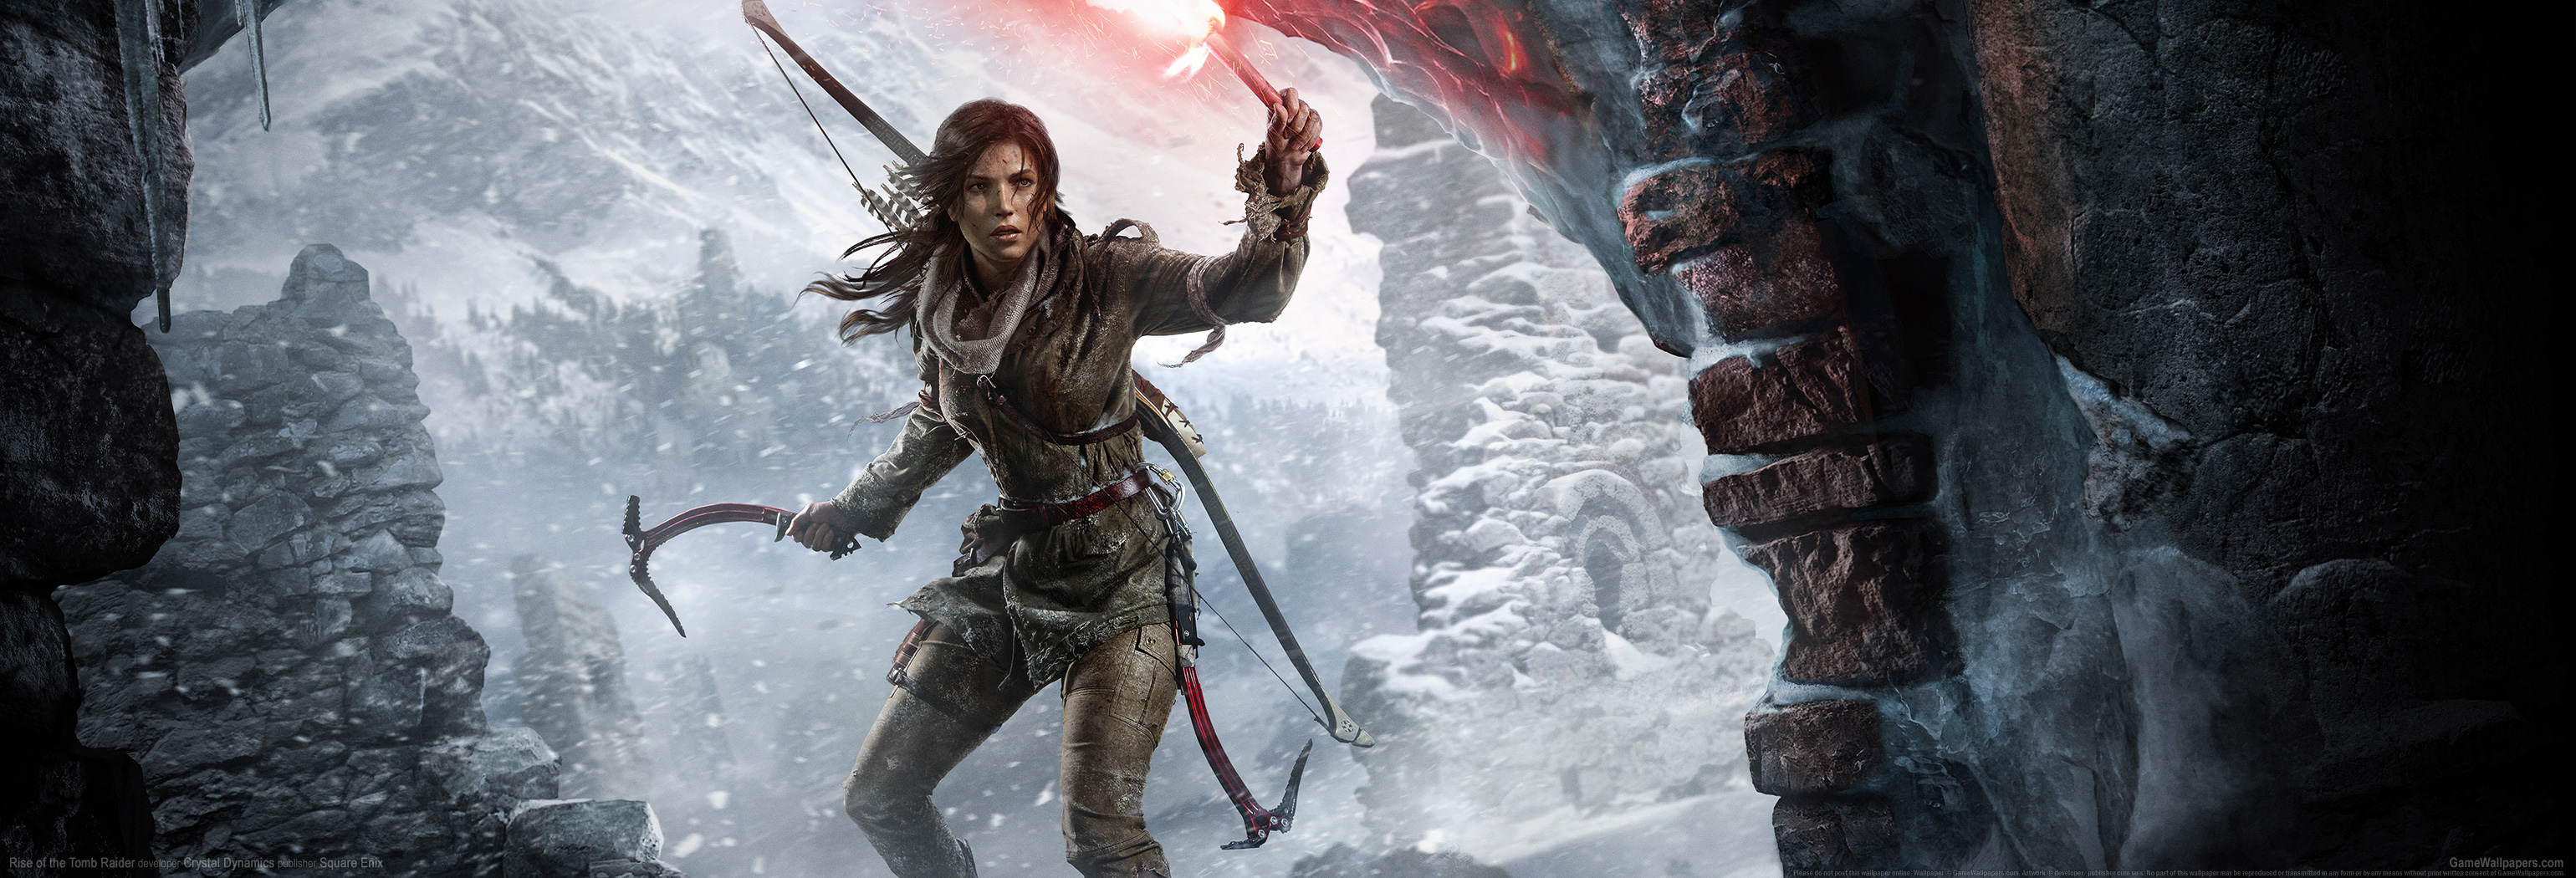 Rise of the Tomb Raider wallpaper 11 3080x1050